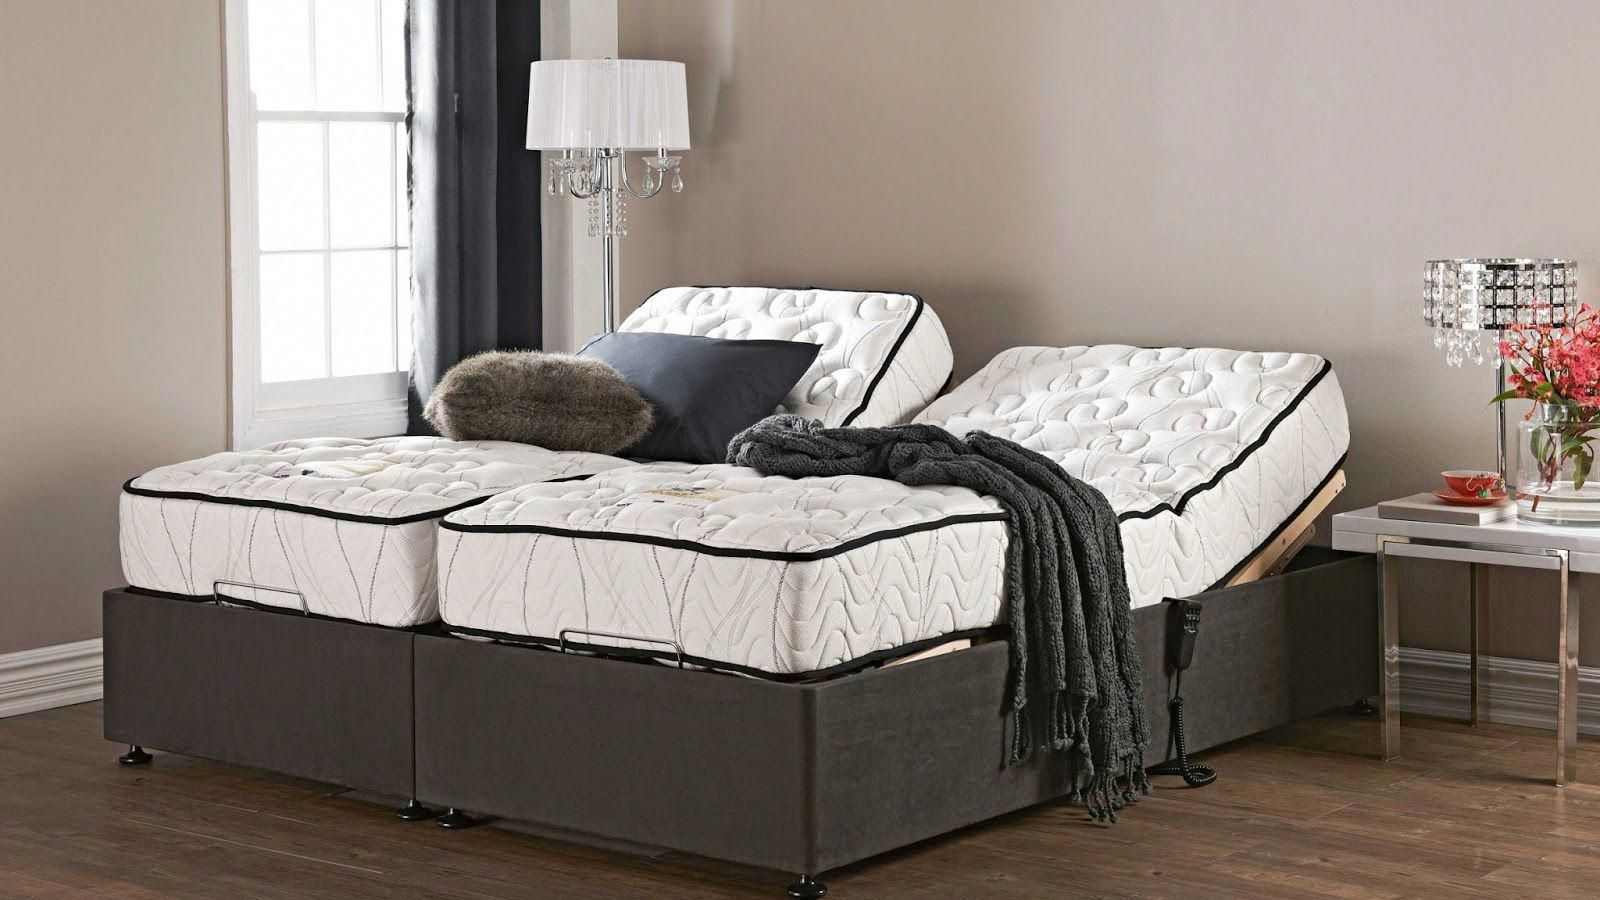 Split Queen Adjustable Beds With Mattress Furnitureanak